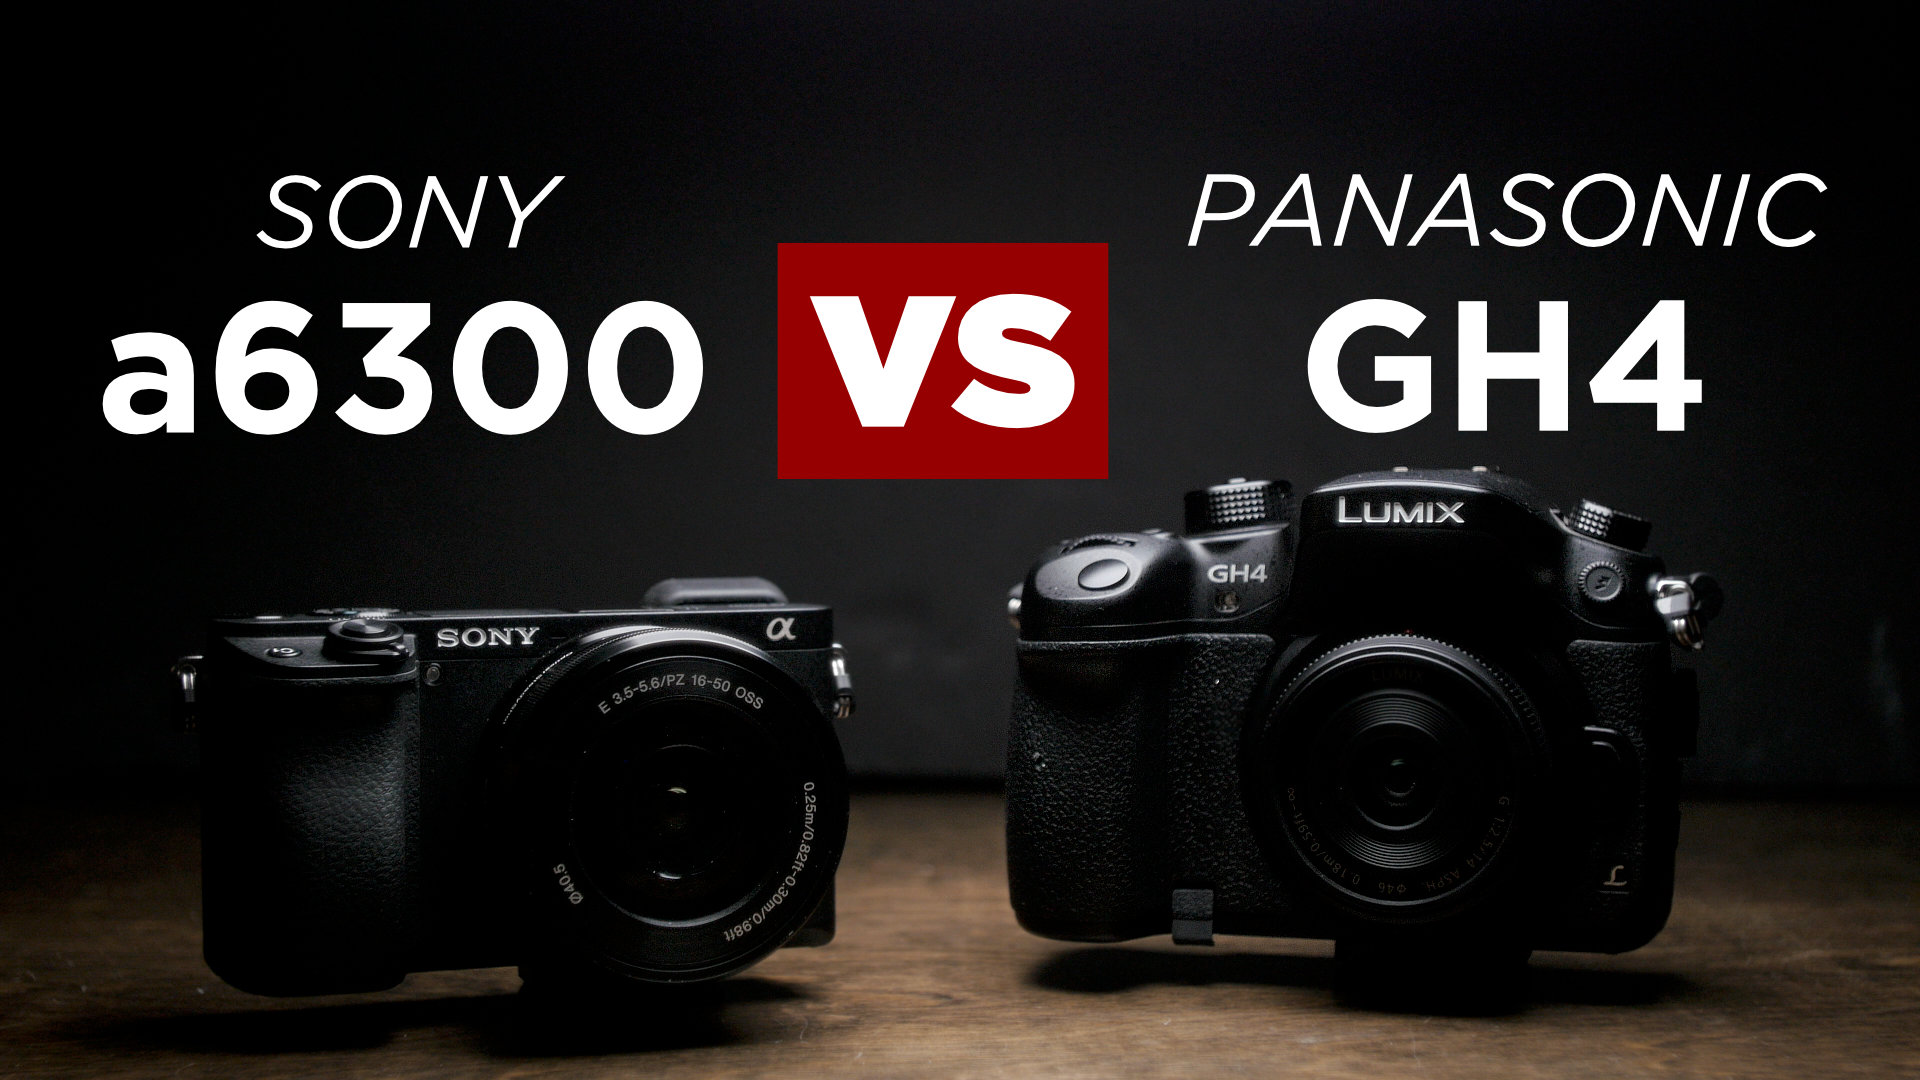 A6300 VS GH4: Which Camera is Best For You?